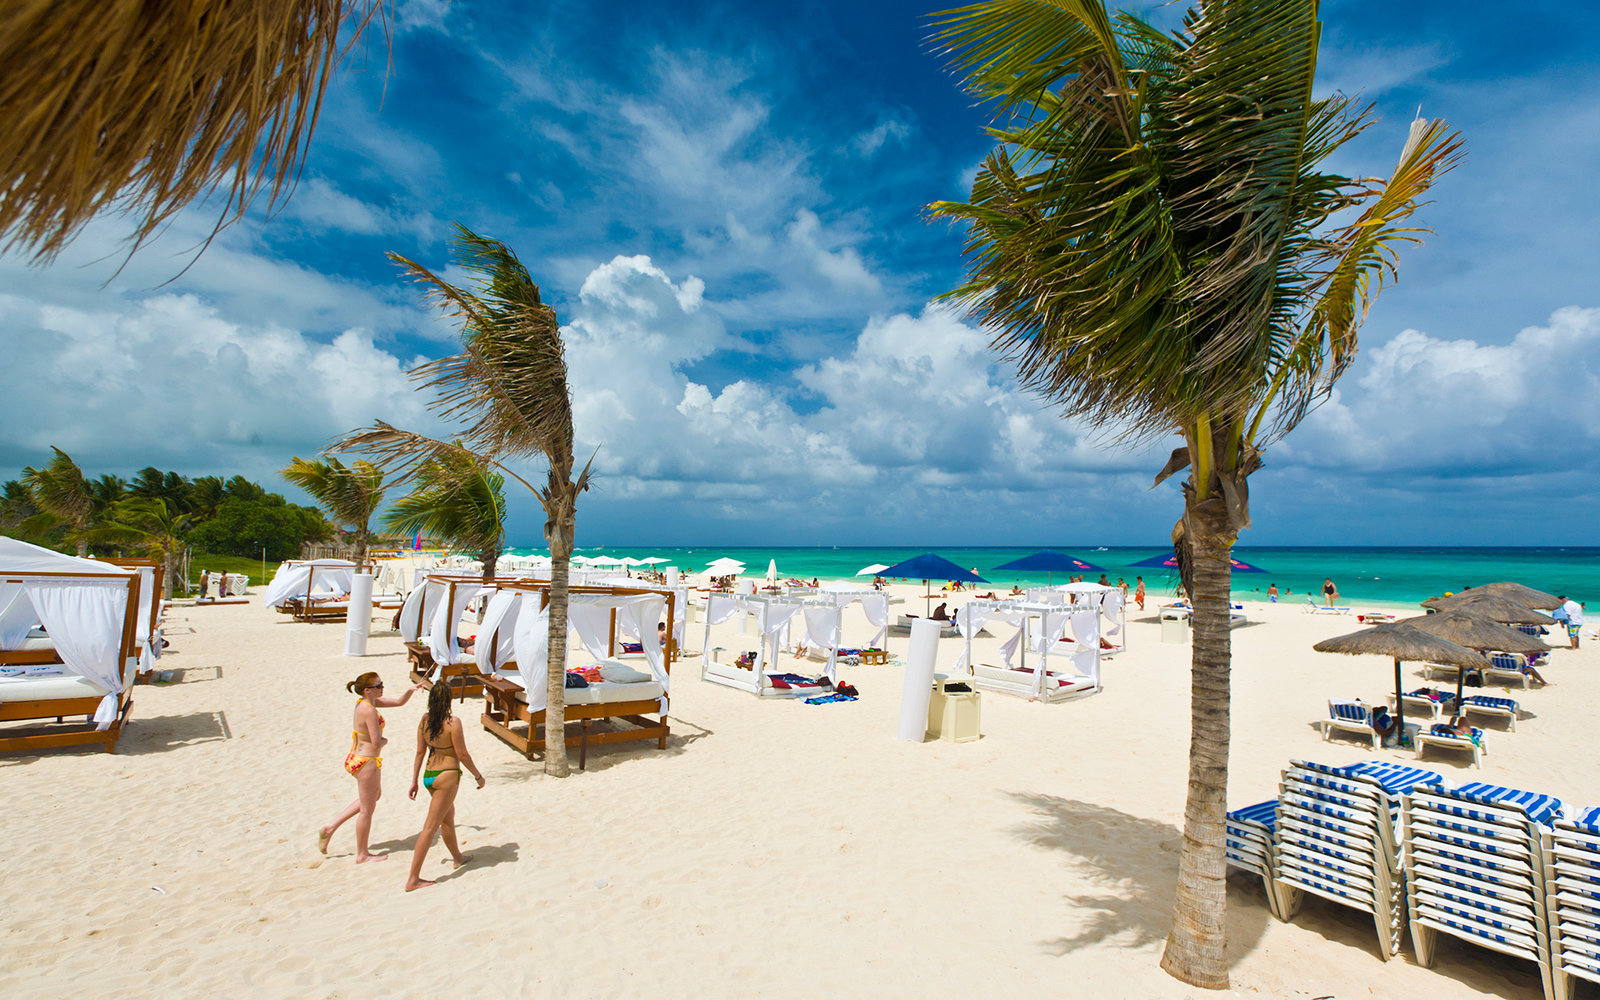 Best Public Beach In Riviera Maya